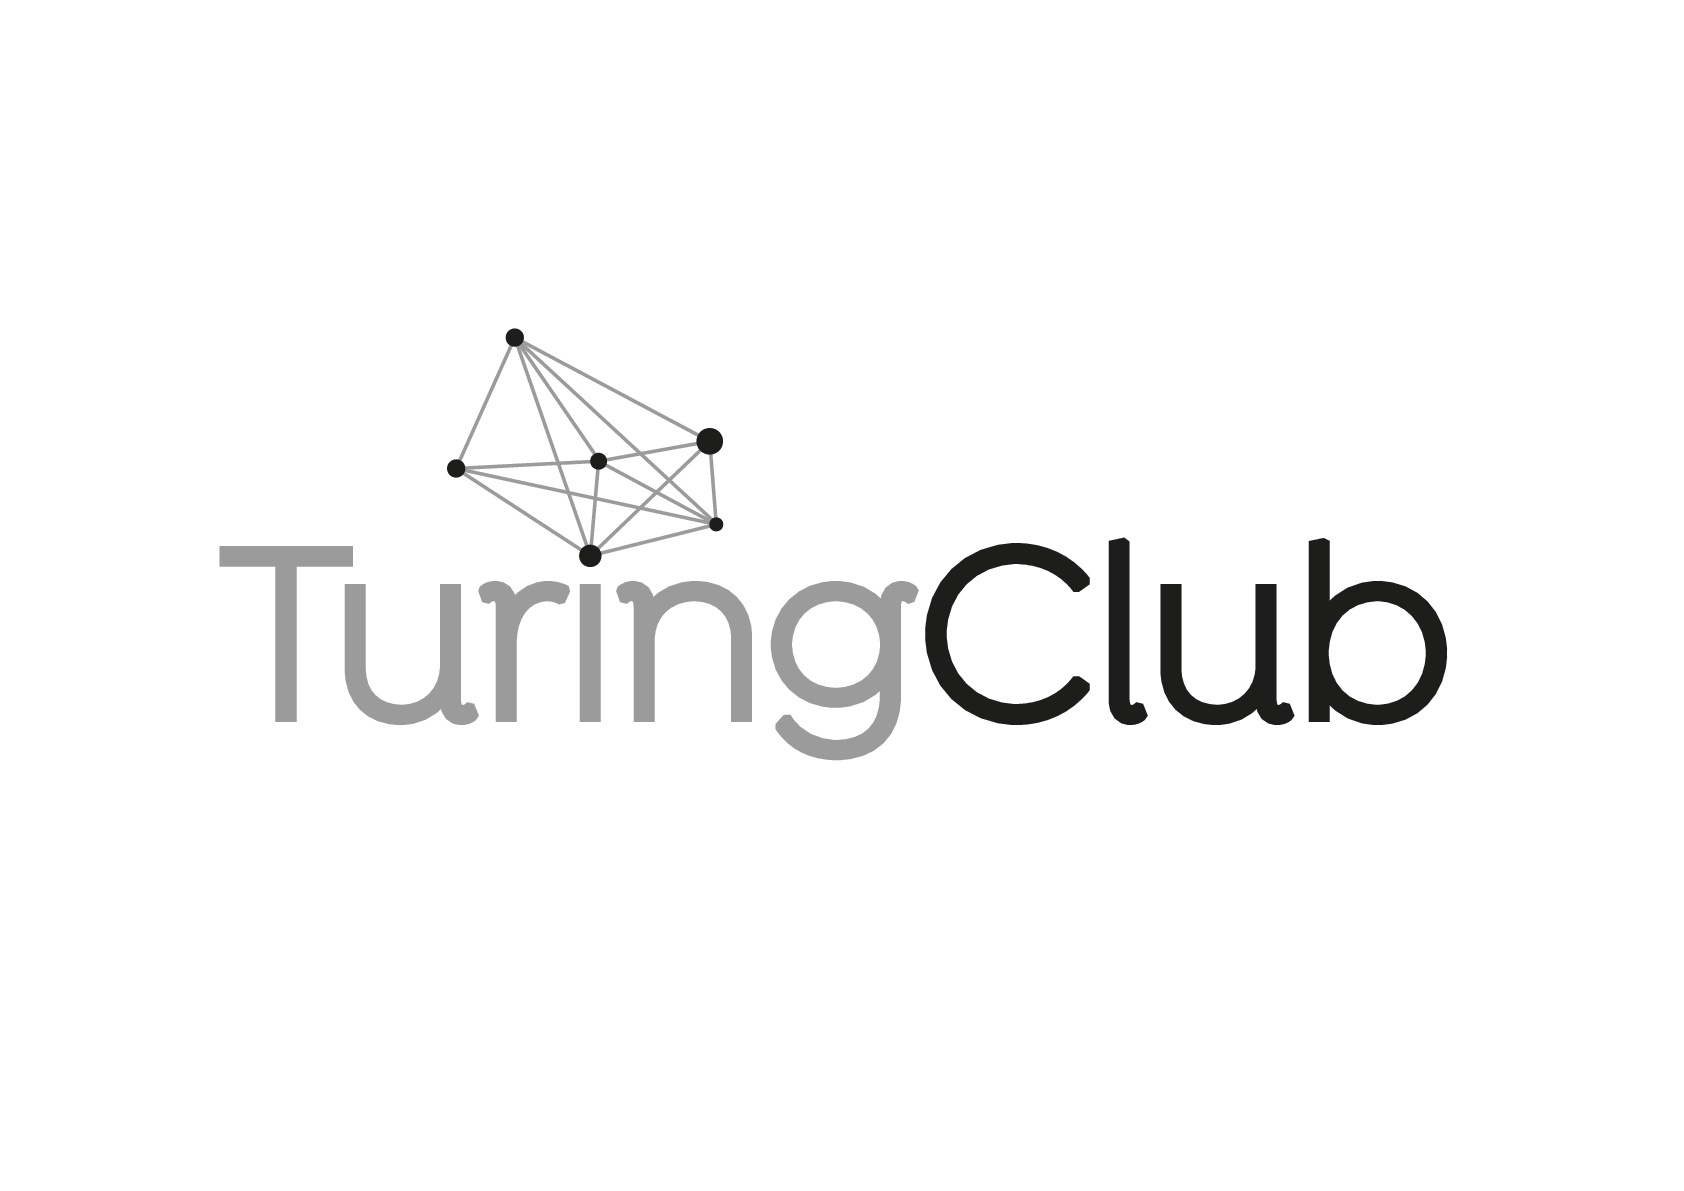 logo Turing Club RVB copy-001